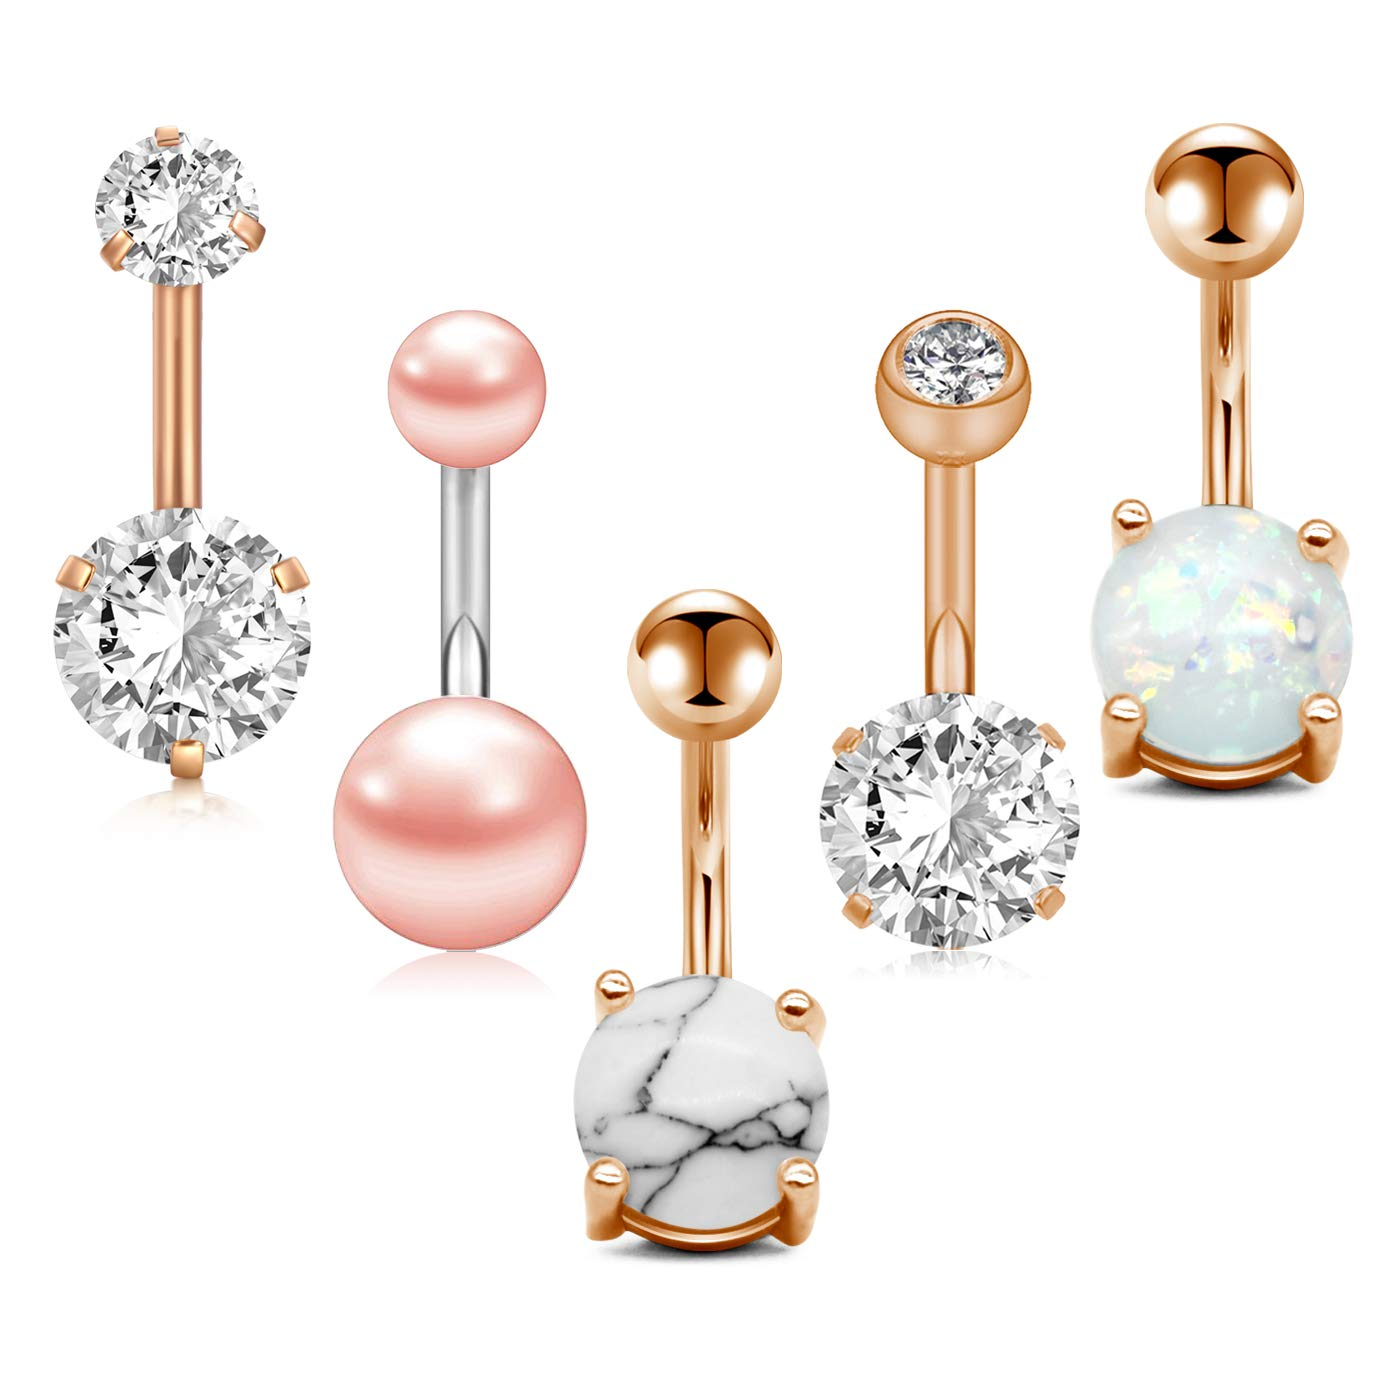 Zolure 14g Rose Gold Belly Button Rings Surgical Steel Short Belly Ring Navel Rings Diamond Opal Cz Pearl Marble 5pcs